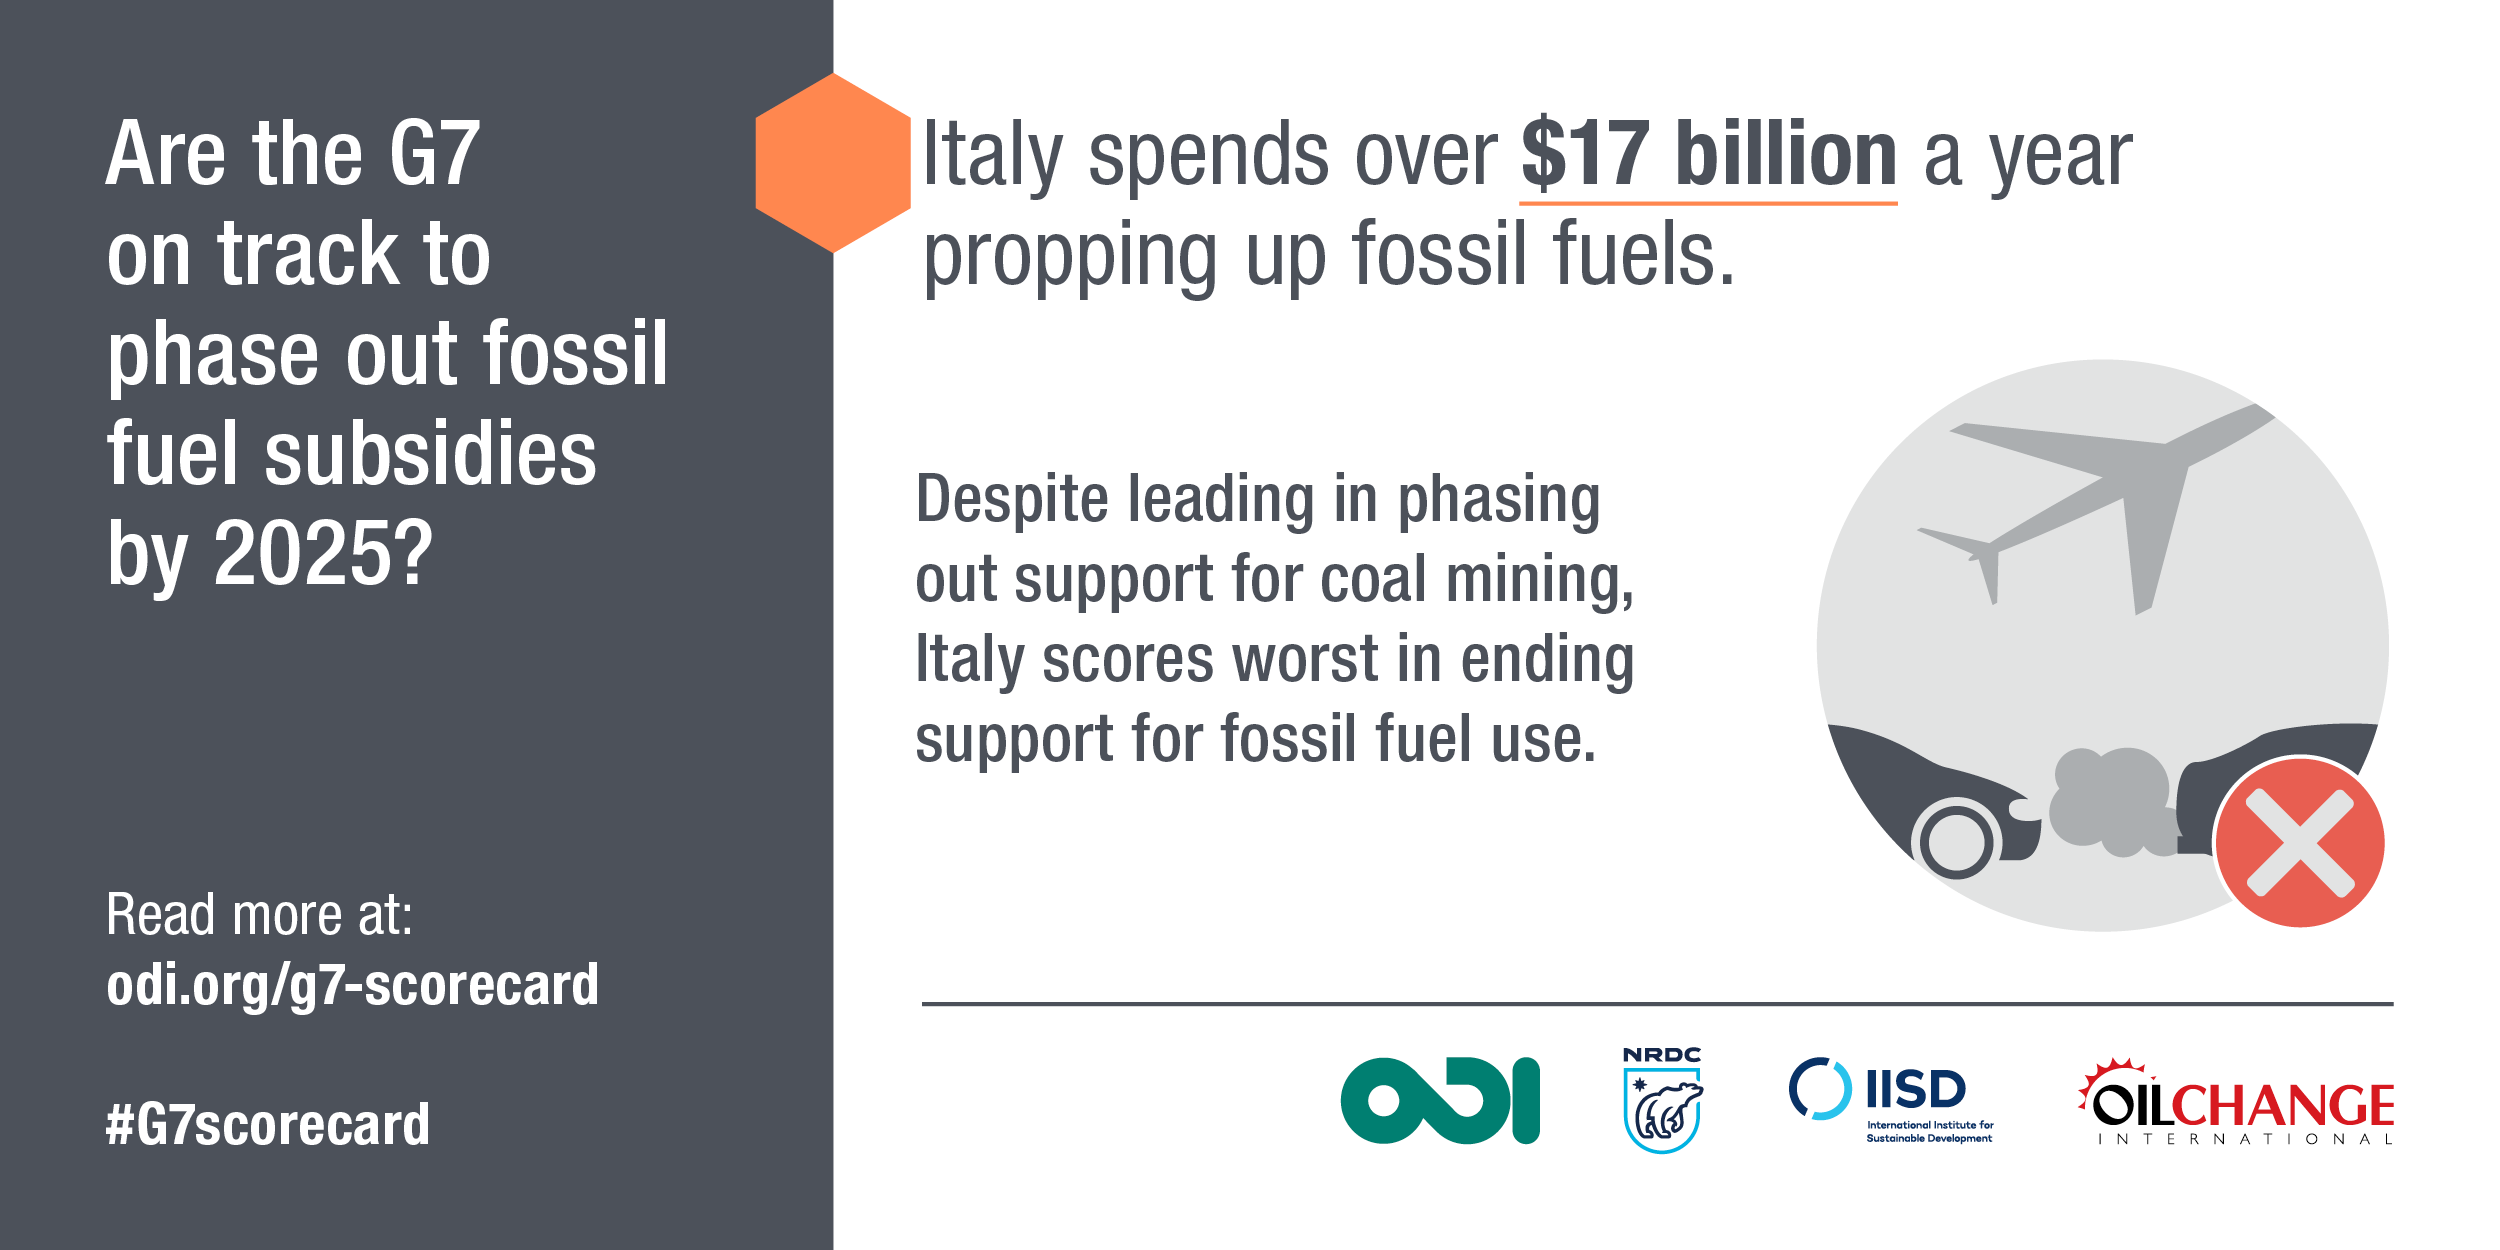 Italy spends over $17 billion a year propping up fossil fuels. Image: ODI